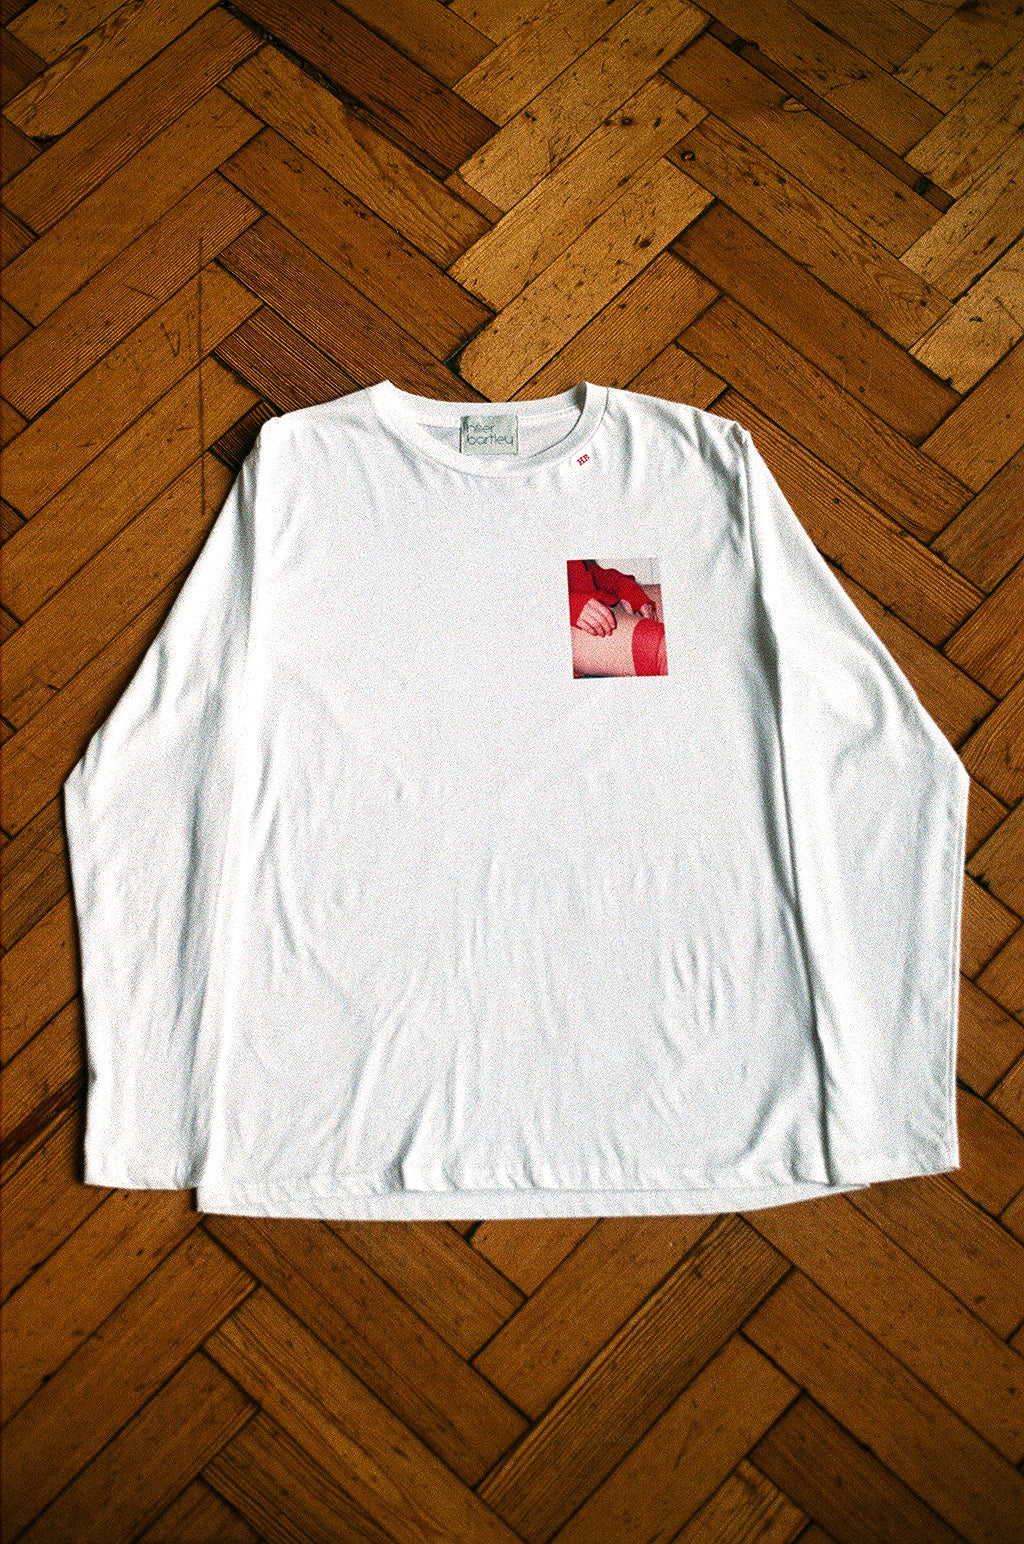 LIMITED EDITION WHITE LONG SLEEVED T-SHIRT IMAGE C SMALL